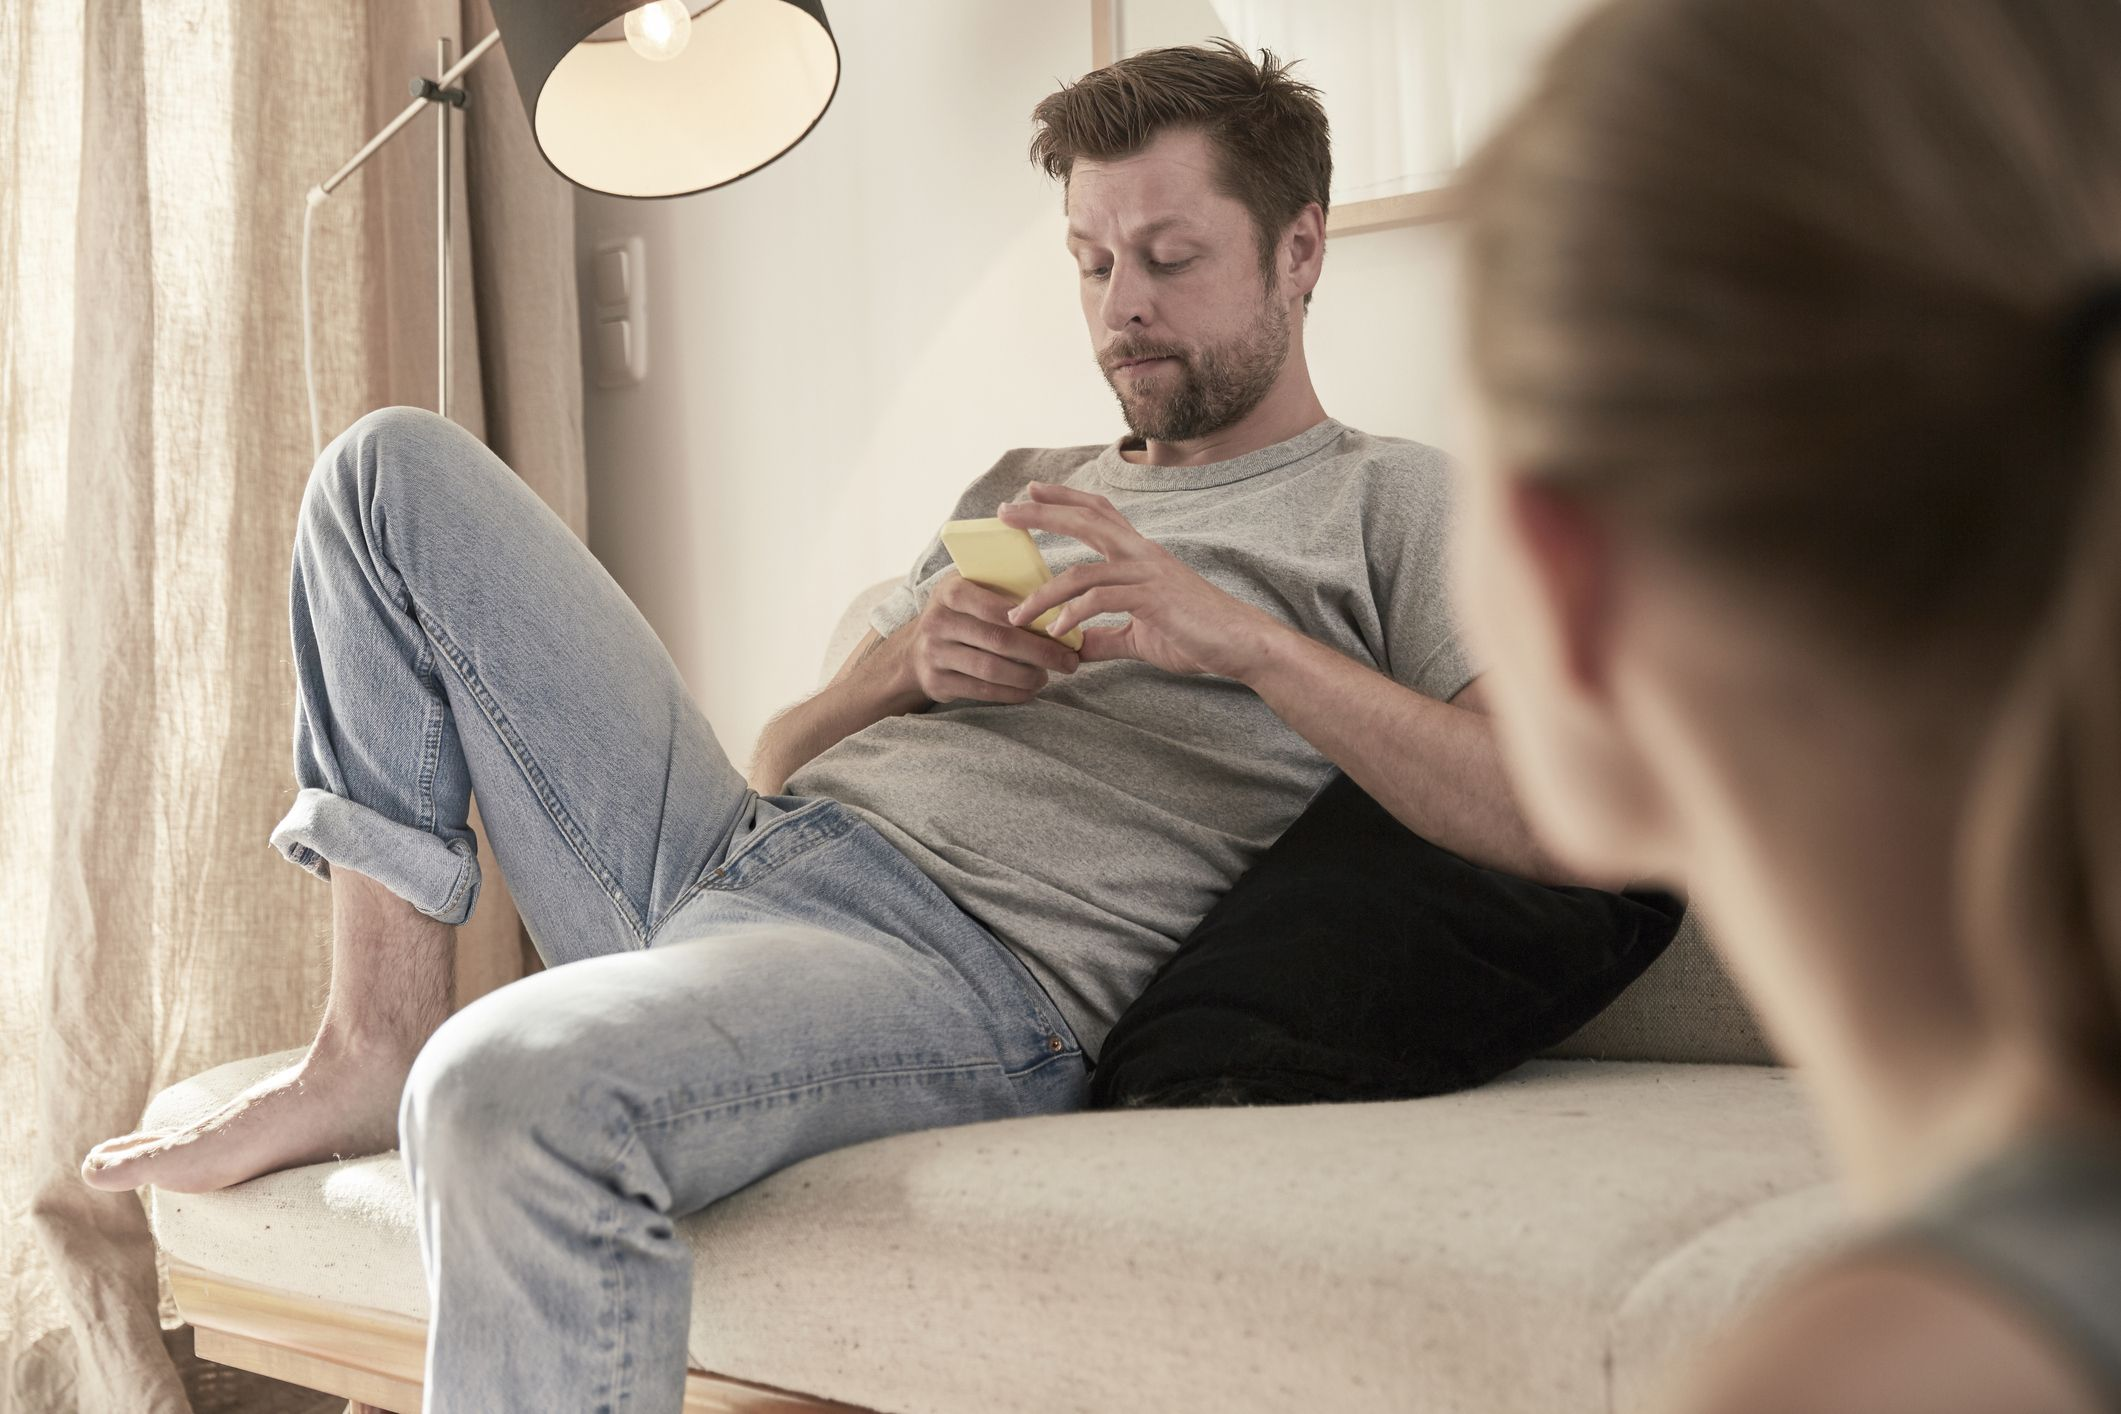 Man at home sitting on couch looking at cell phone with women in foreground